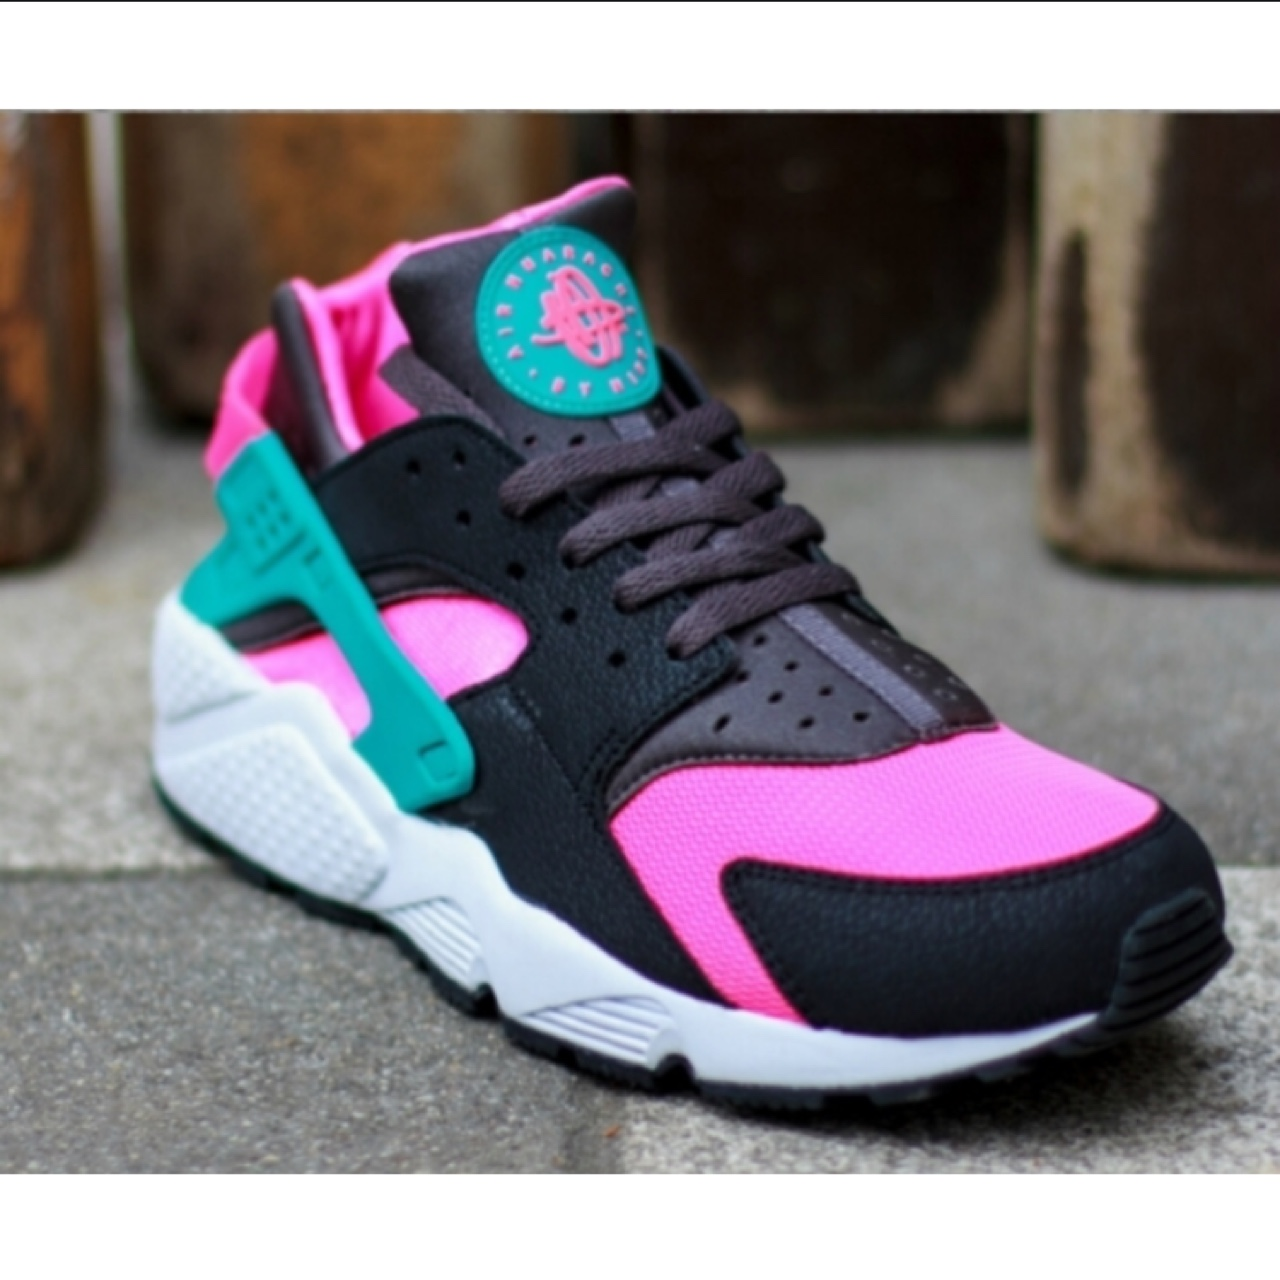 pink and green huaraches